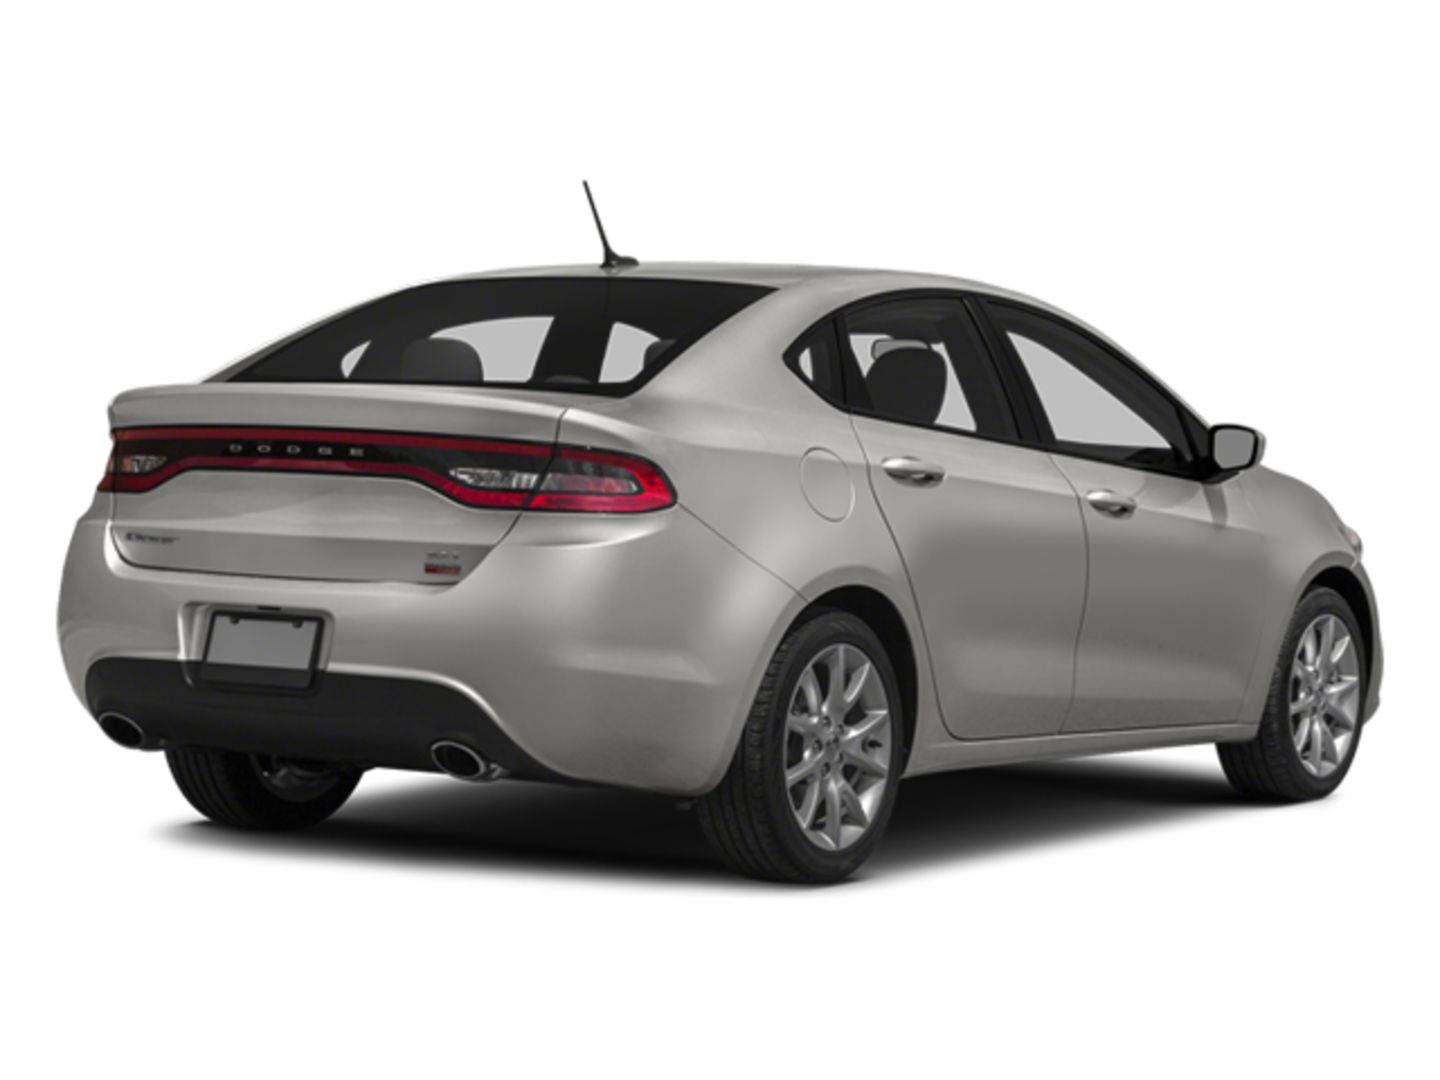 2014 Dodge Dart SXT for sale in Edmonton, Alberta